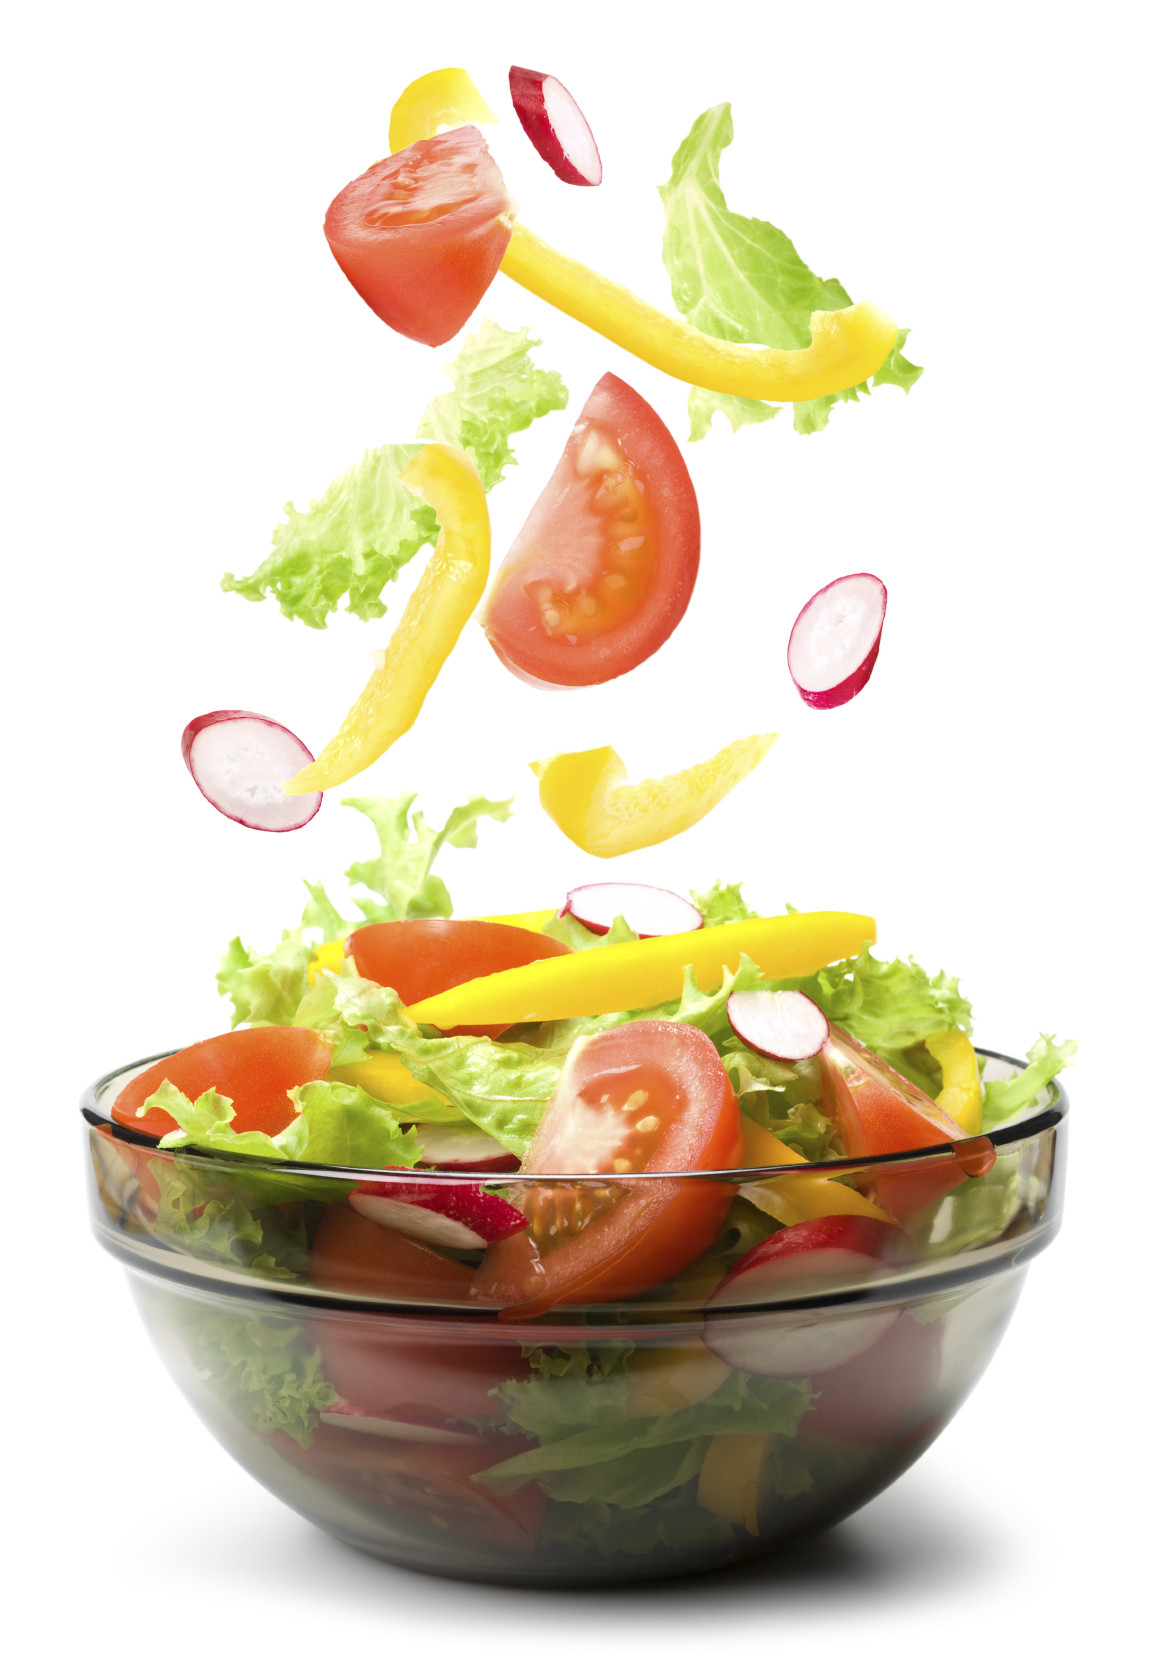 Healthy Salads To Eat  Field of Greens Mix it Up Learn to Build a Better Salad